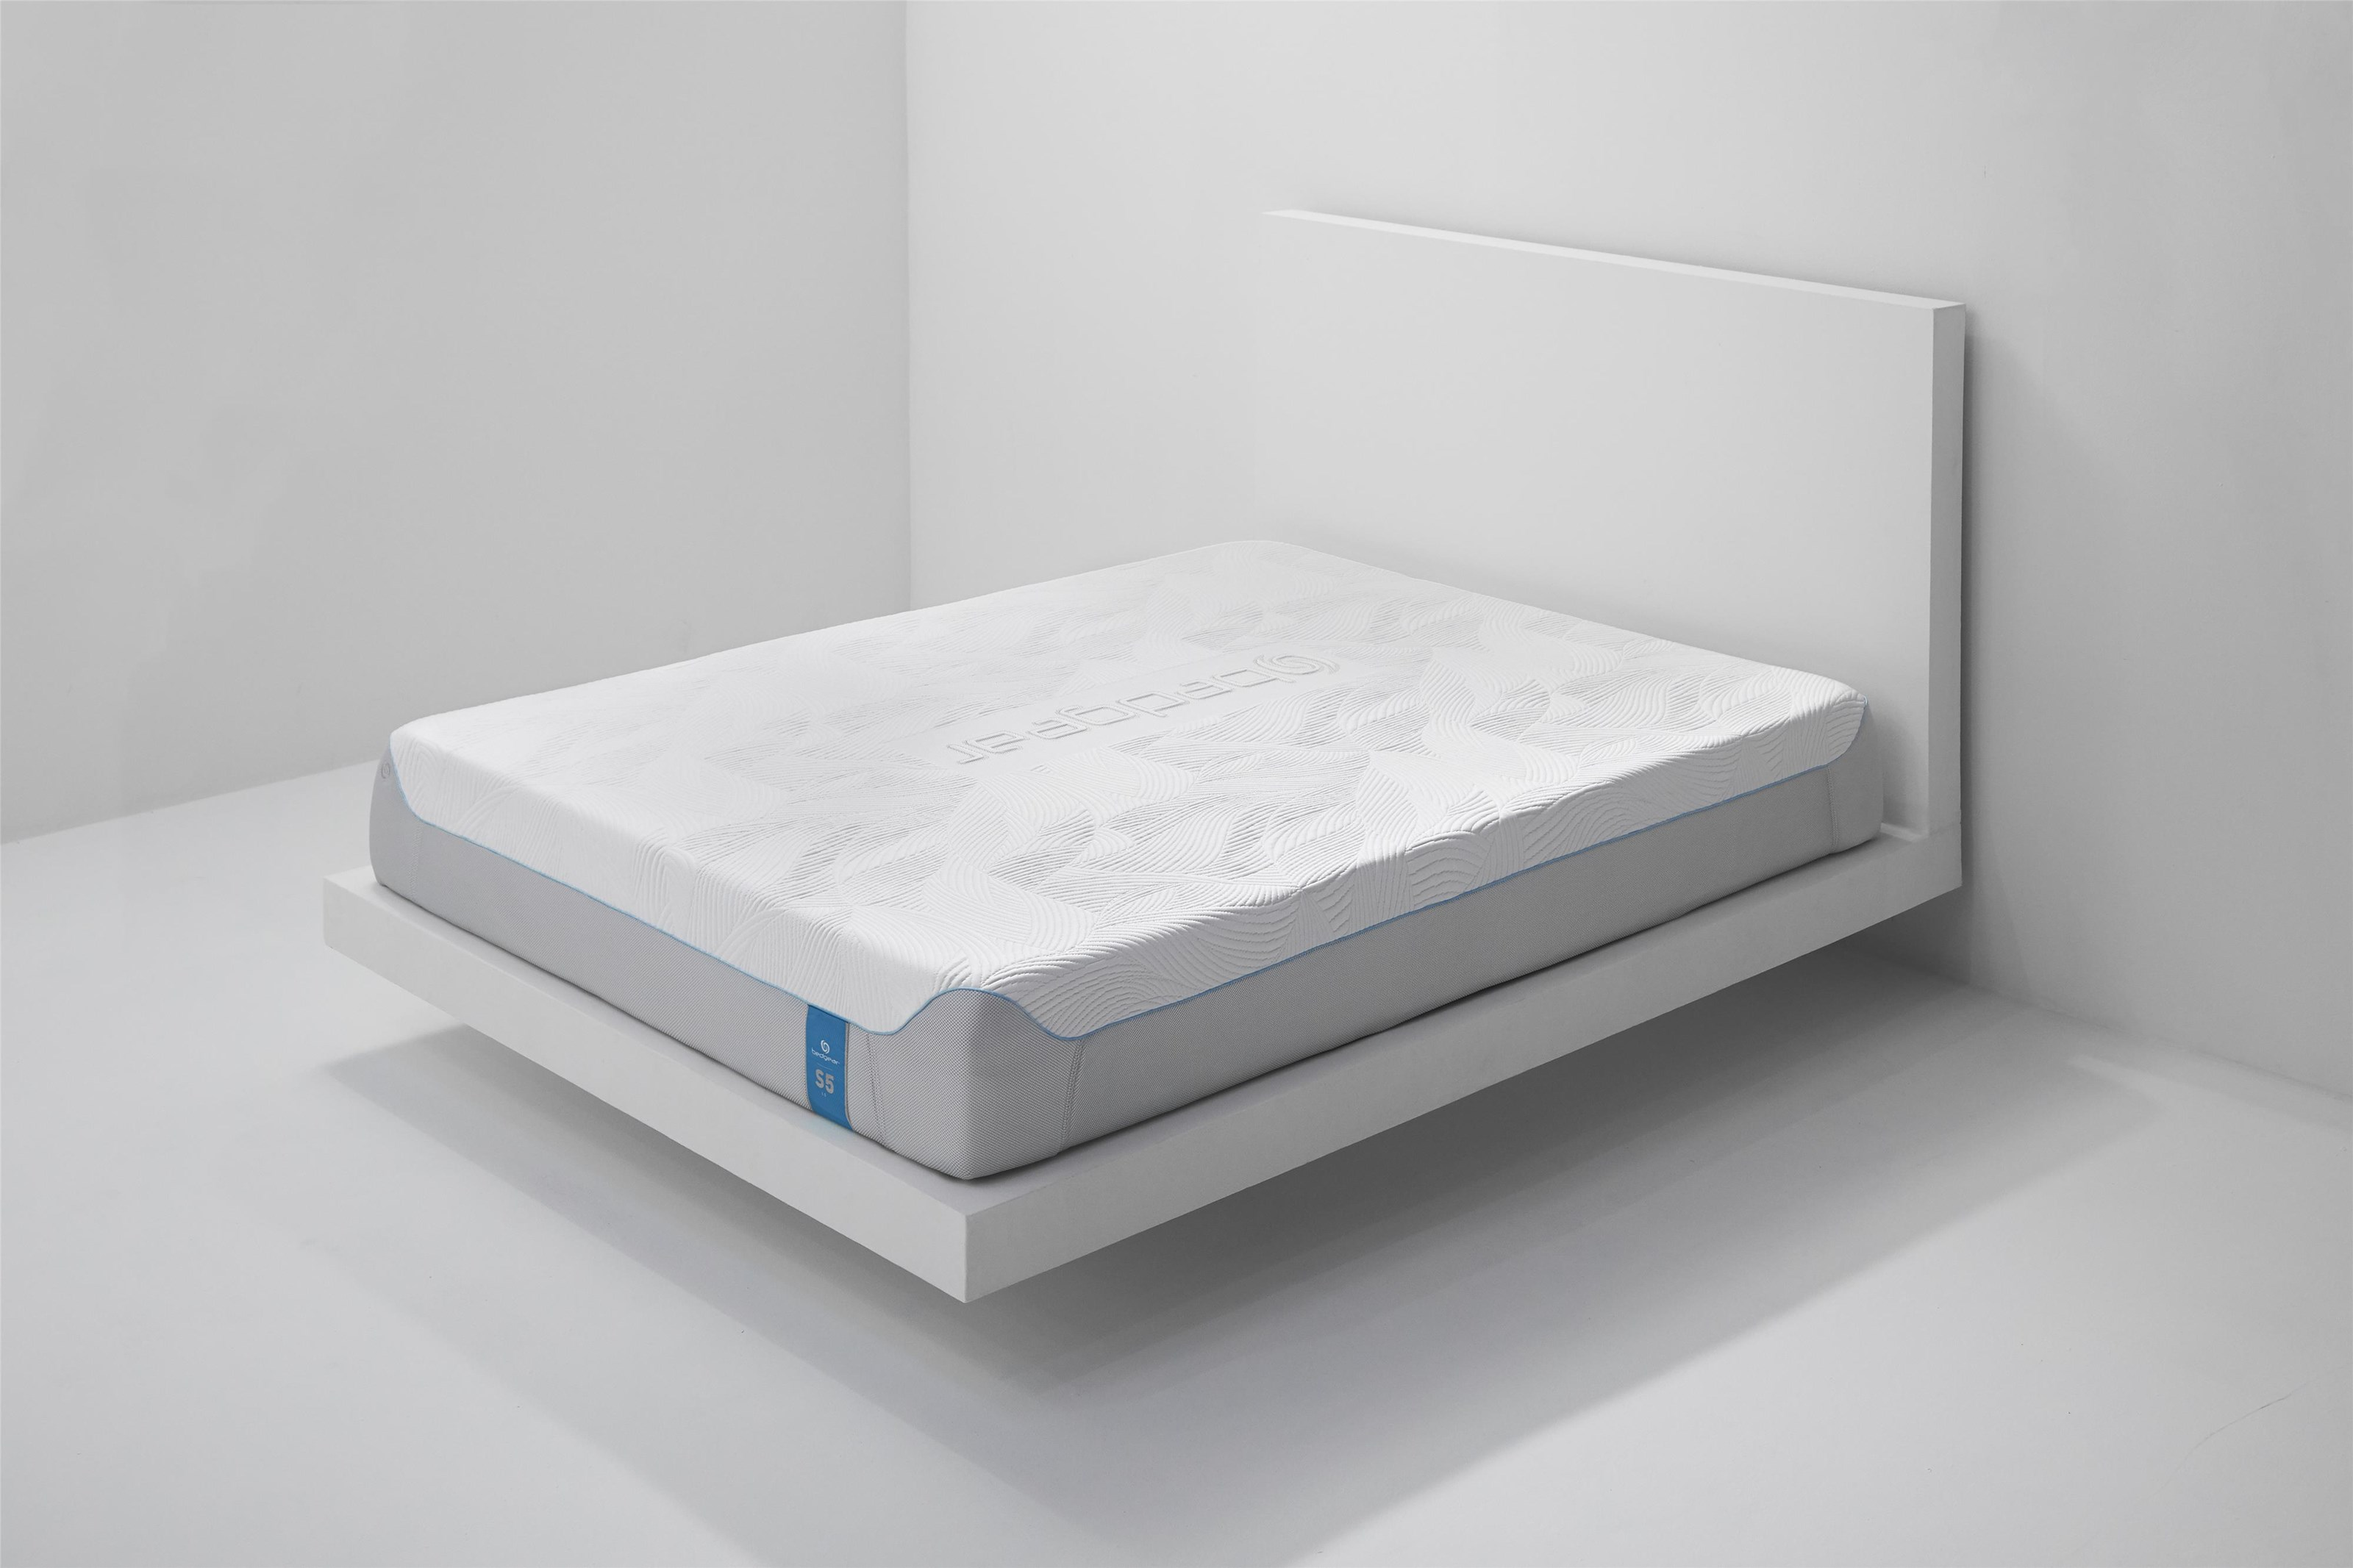 S5 S5 King Mattress by Bedgear at Morris Home